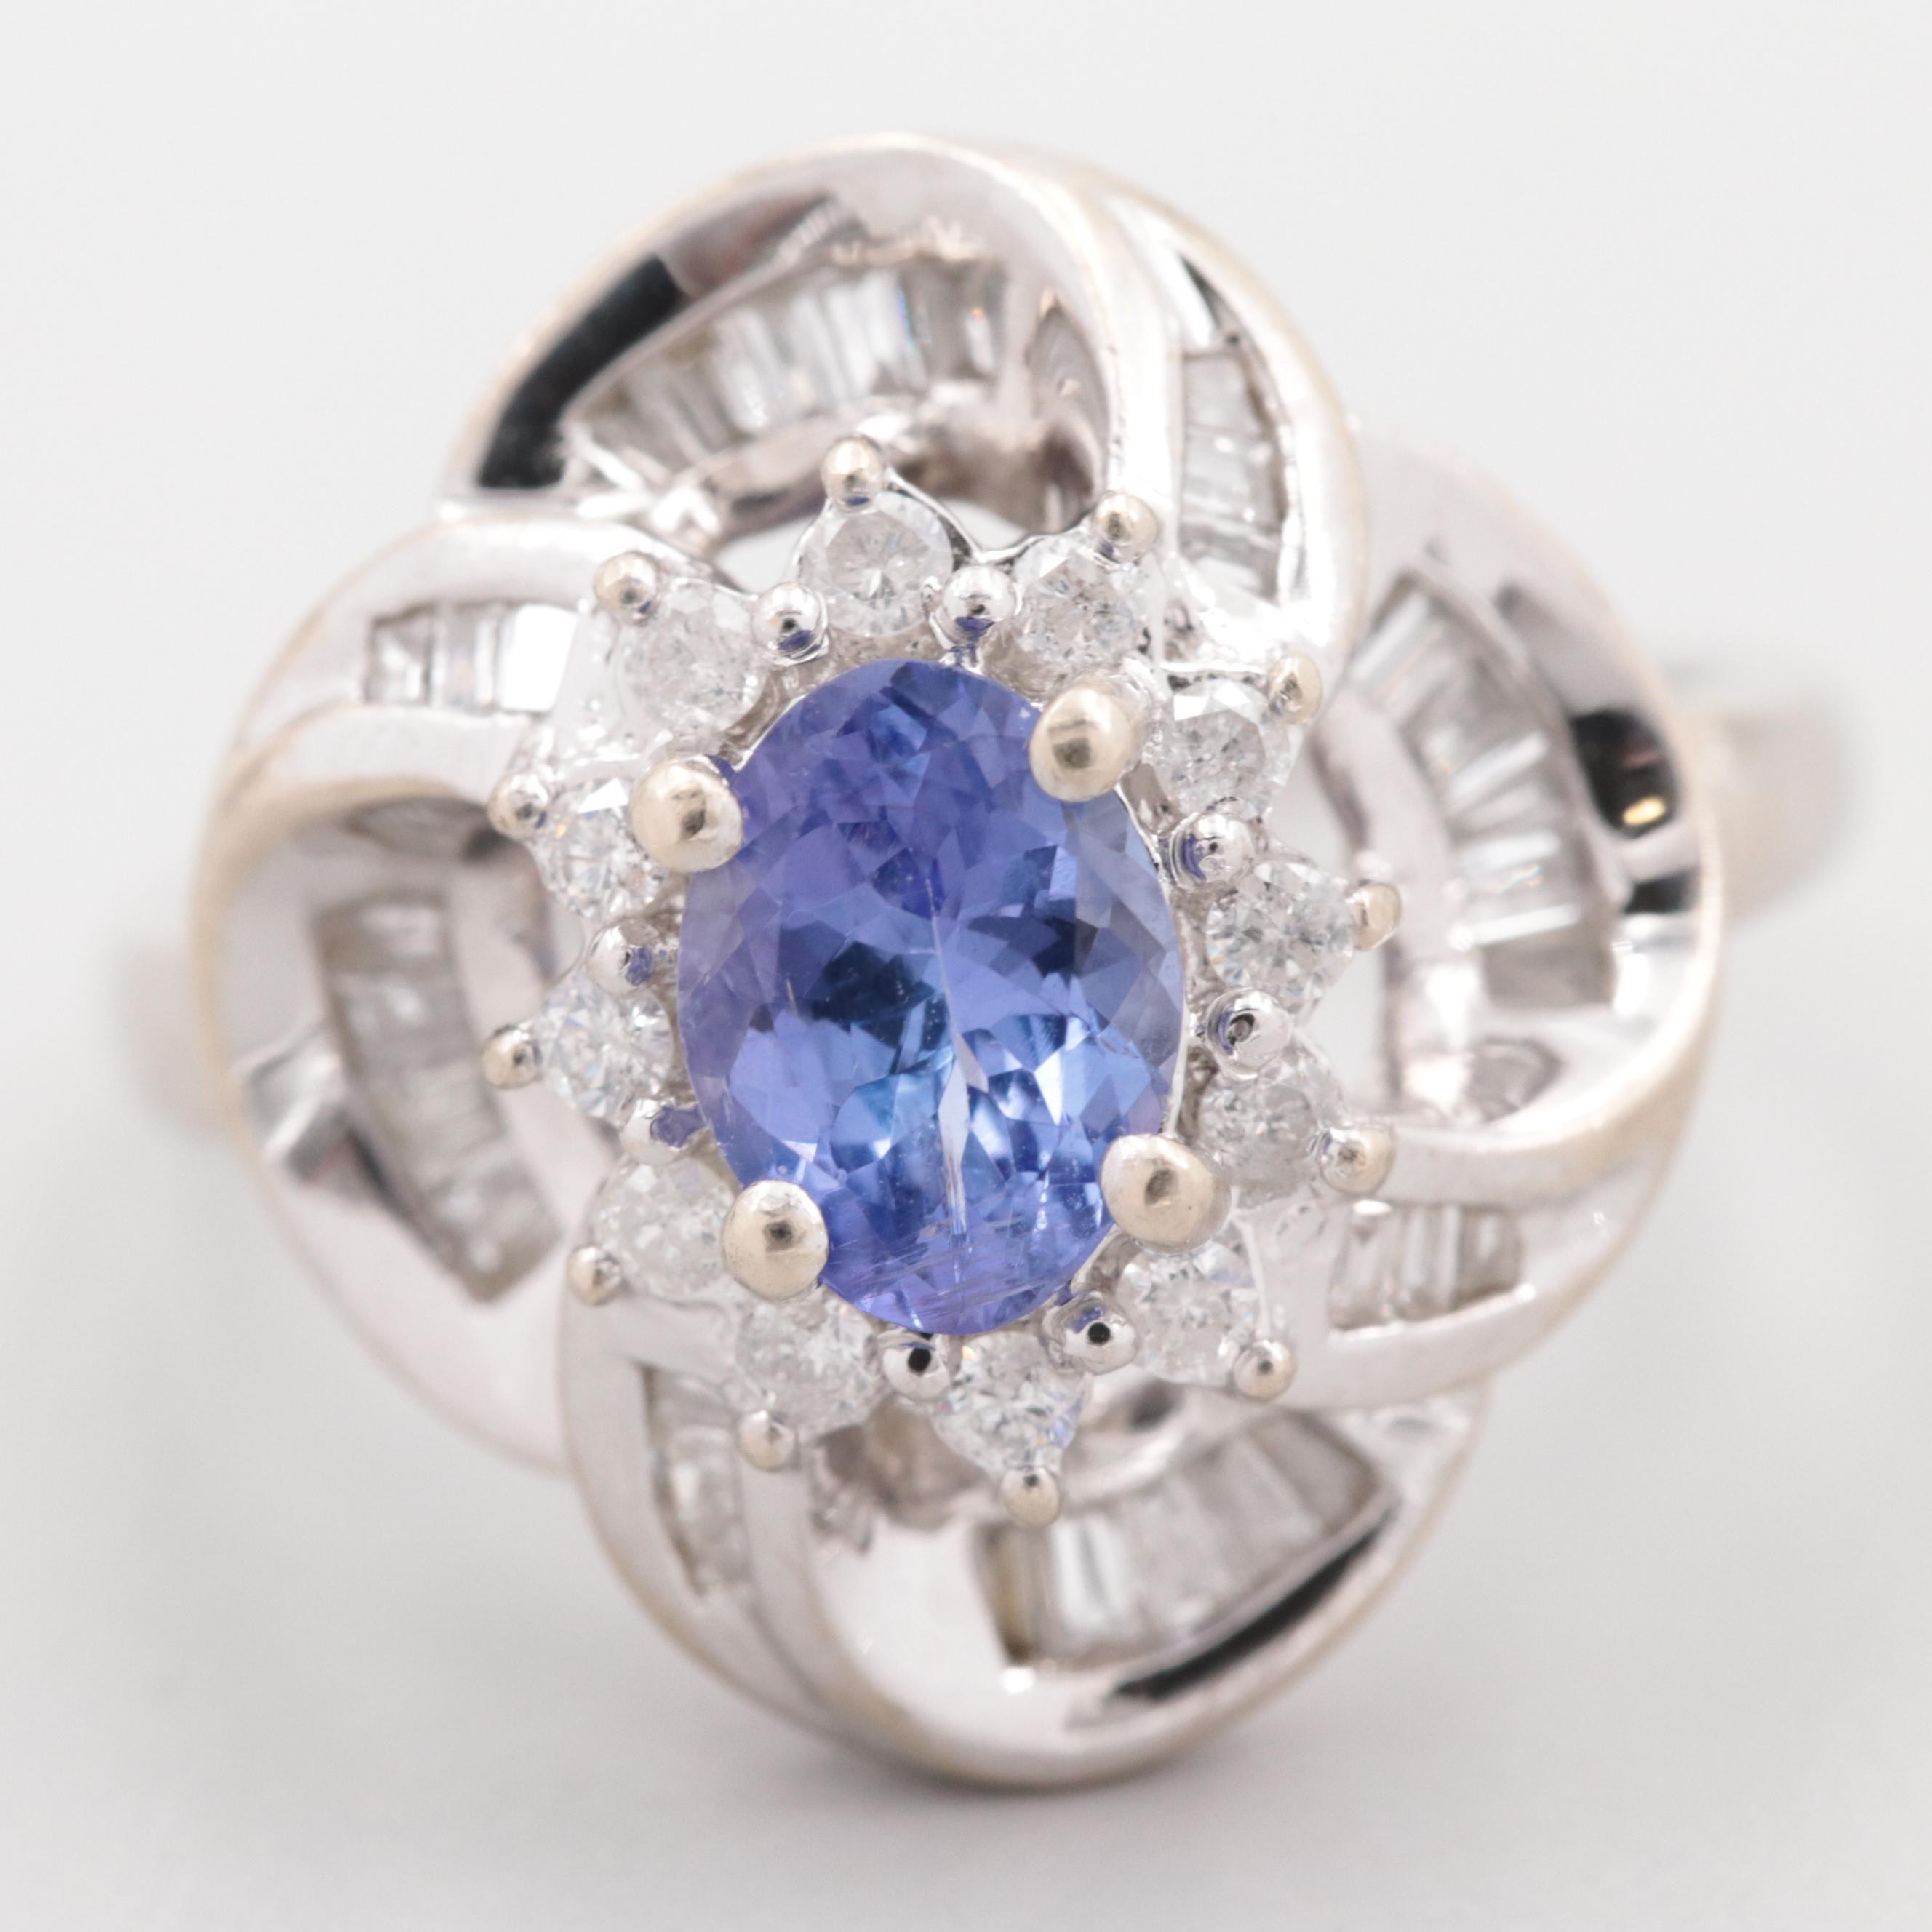 Vintage 14K White Gold Tanzanite Ring in Scalloped Mounting with Diamond Halo